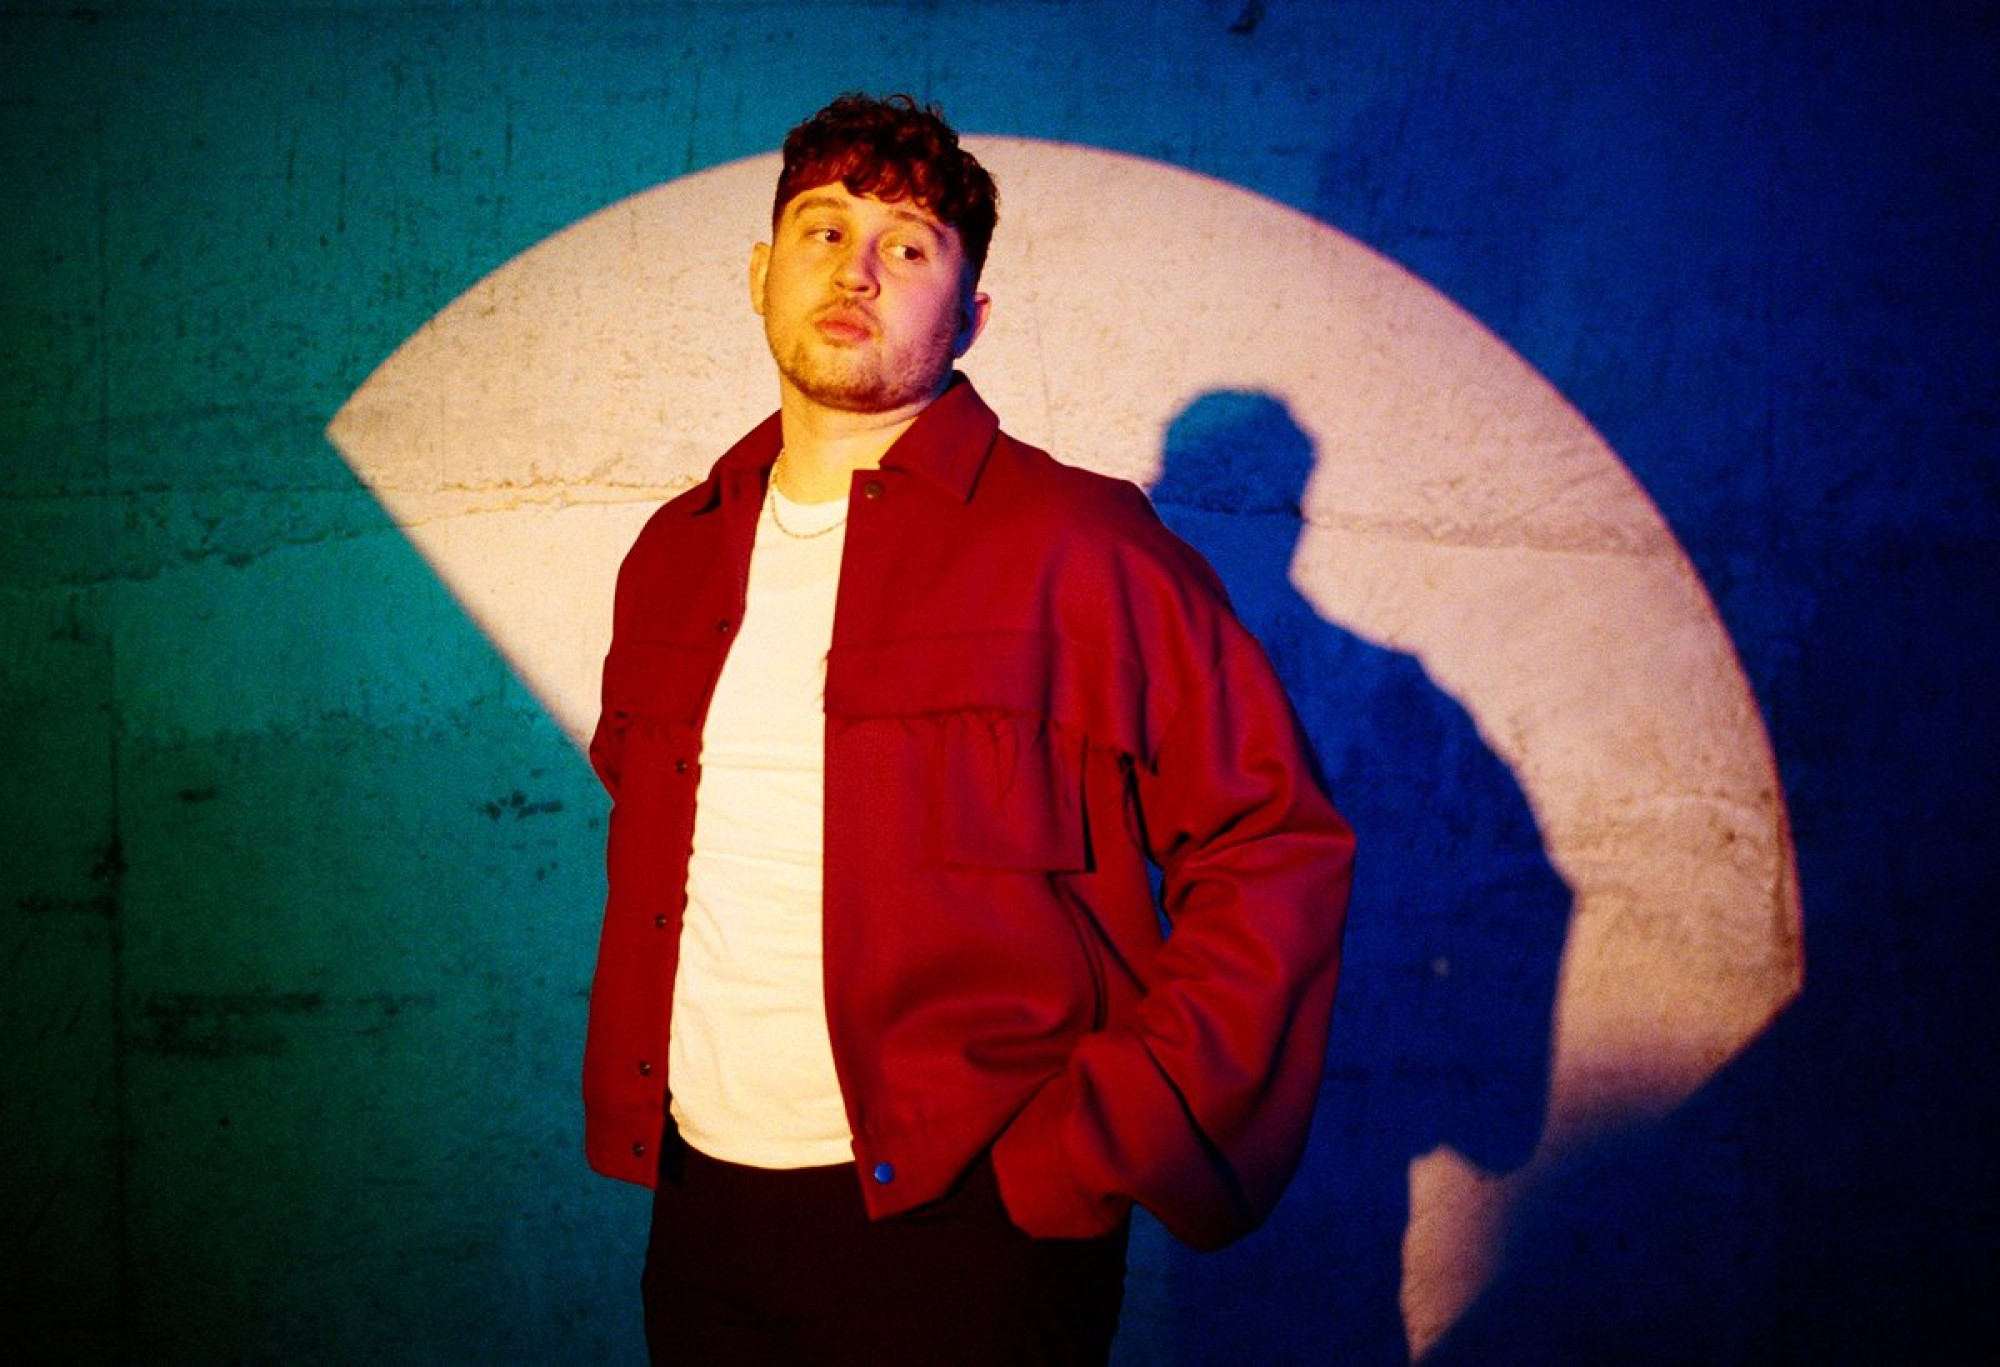 James Vickery, R&B Singer-Songwriter, New Single, Somewhere Out There, wears red shirt in spotlight